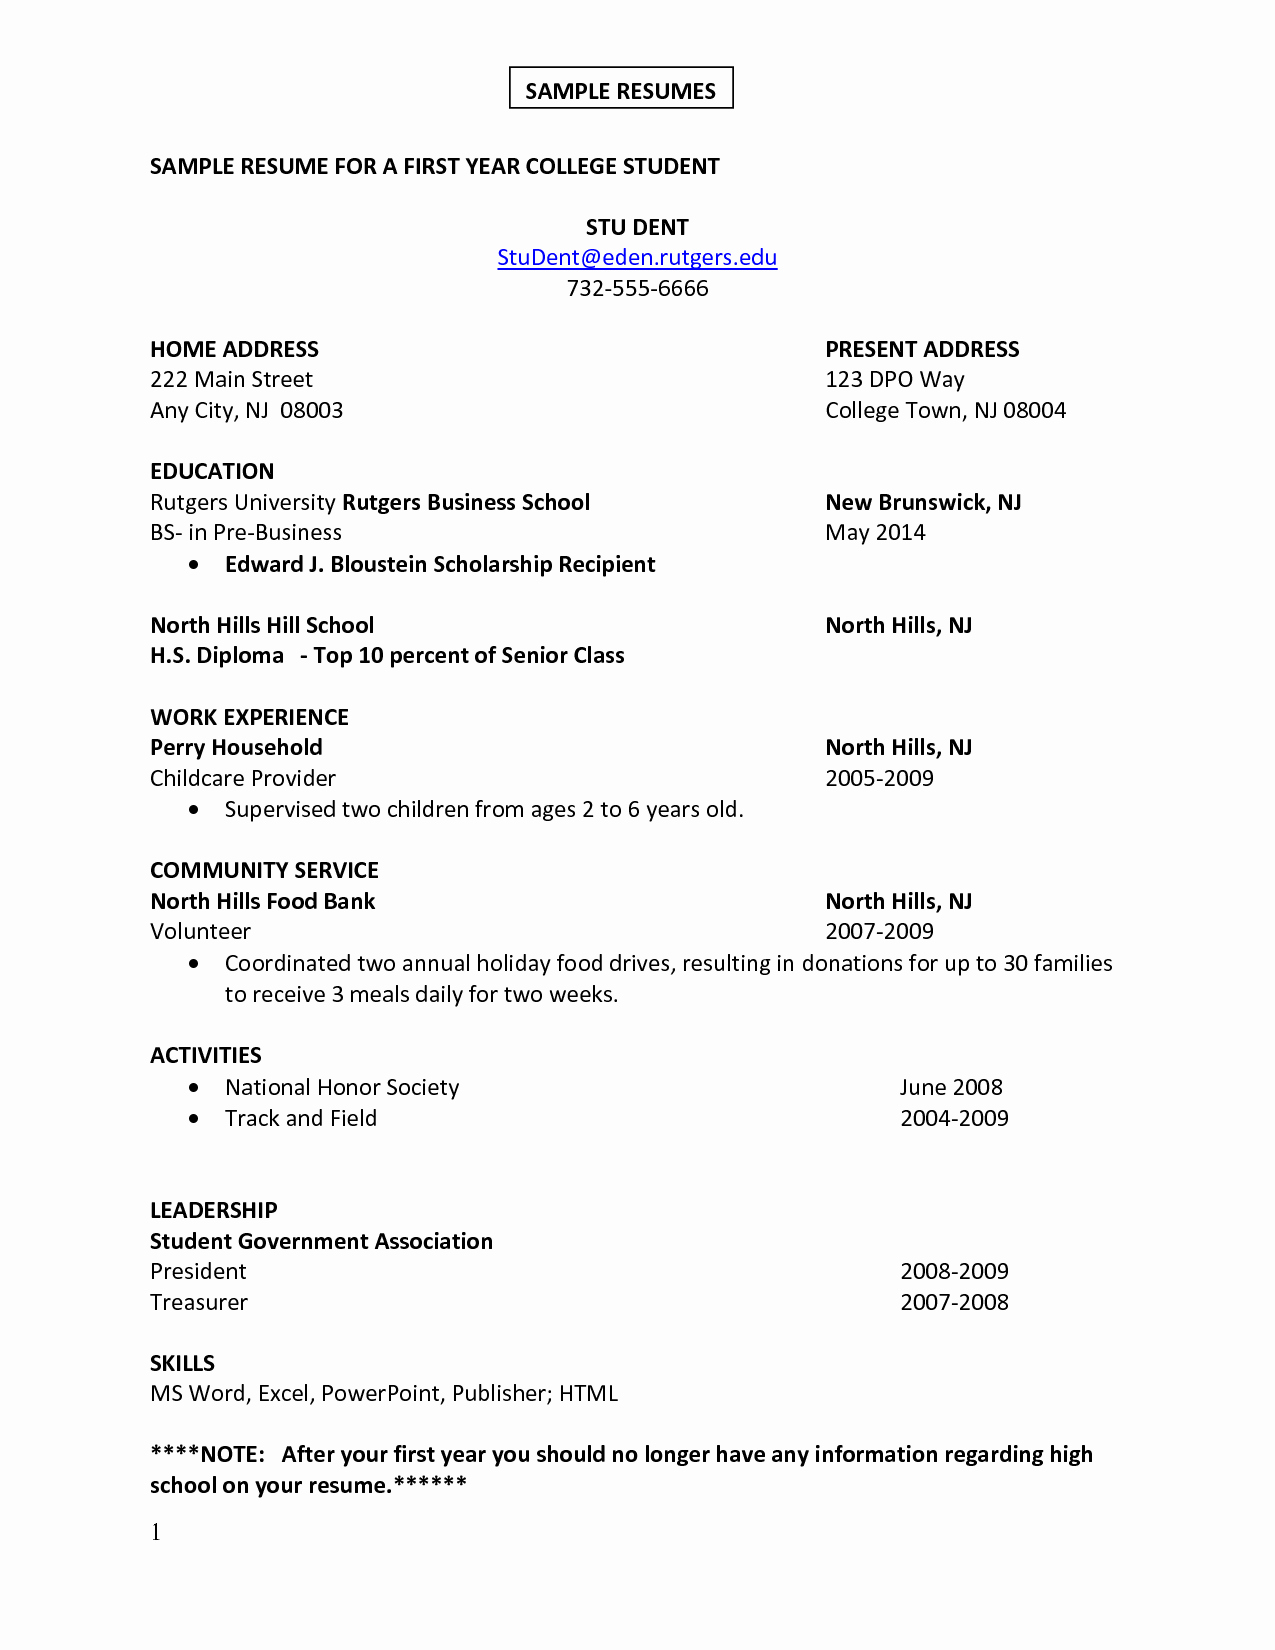 Sample Resume for A First Year College Student with Skills